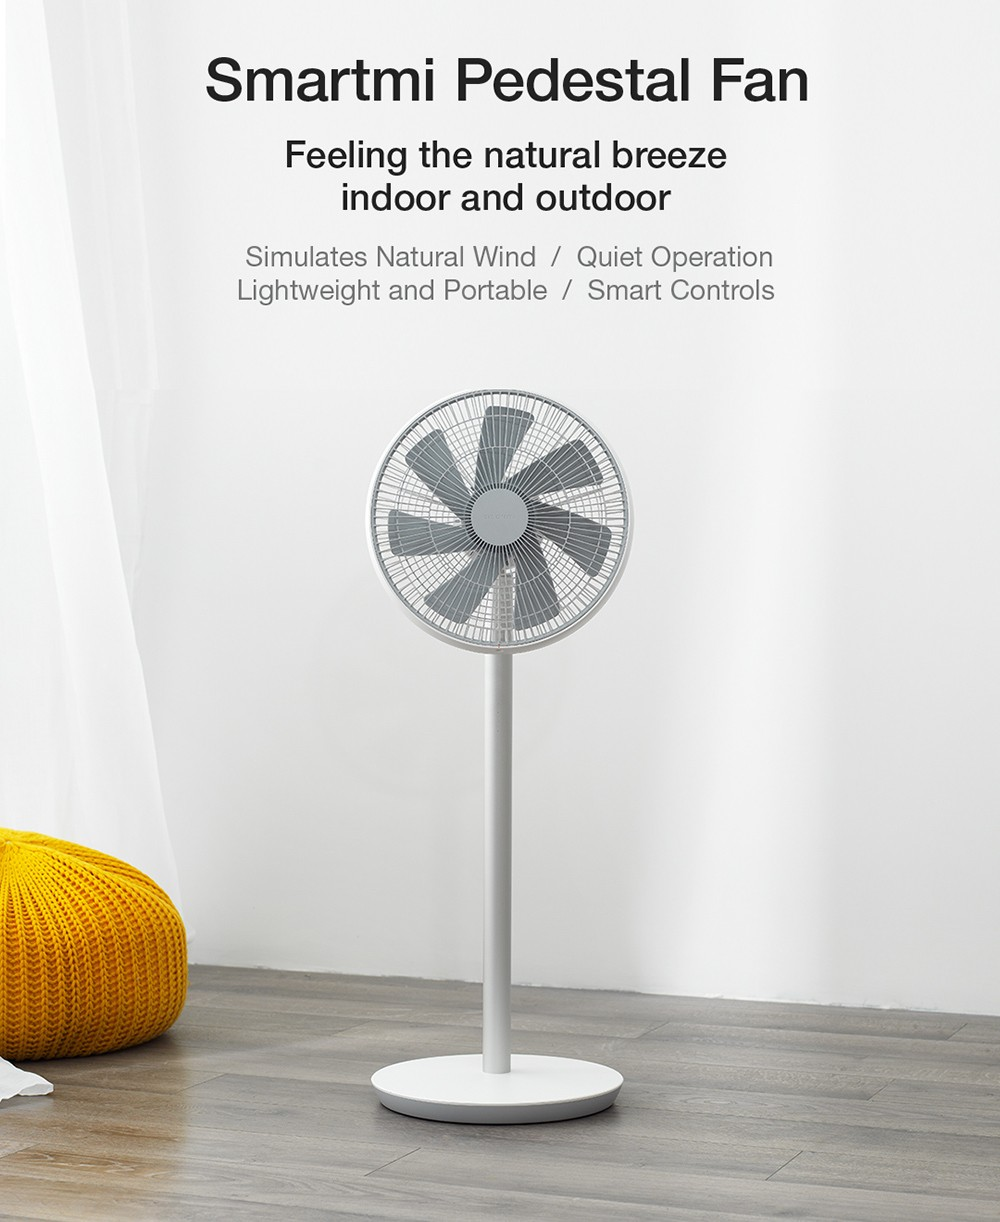 Smartmi-2S DC Frequency Conversion Natural Wind Floor Fan ( Xiaomi Ecosystem Product )- White